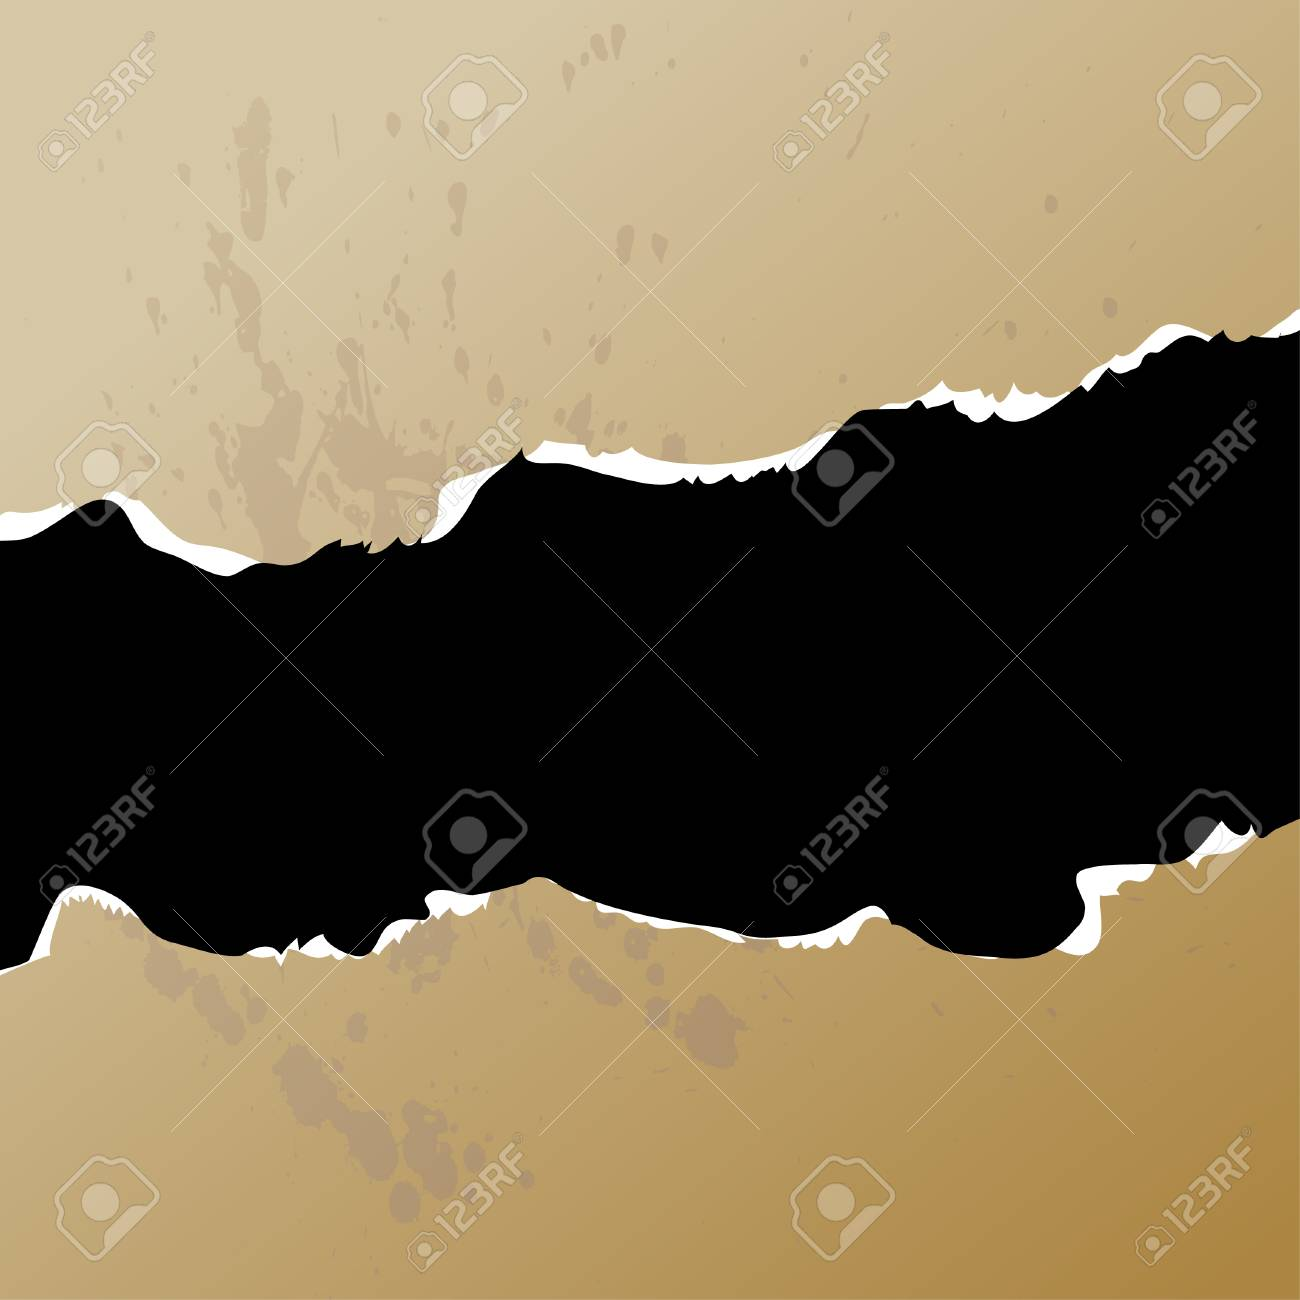 Hole in paper. Vector illustration. Stock Vector - 3406694